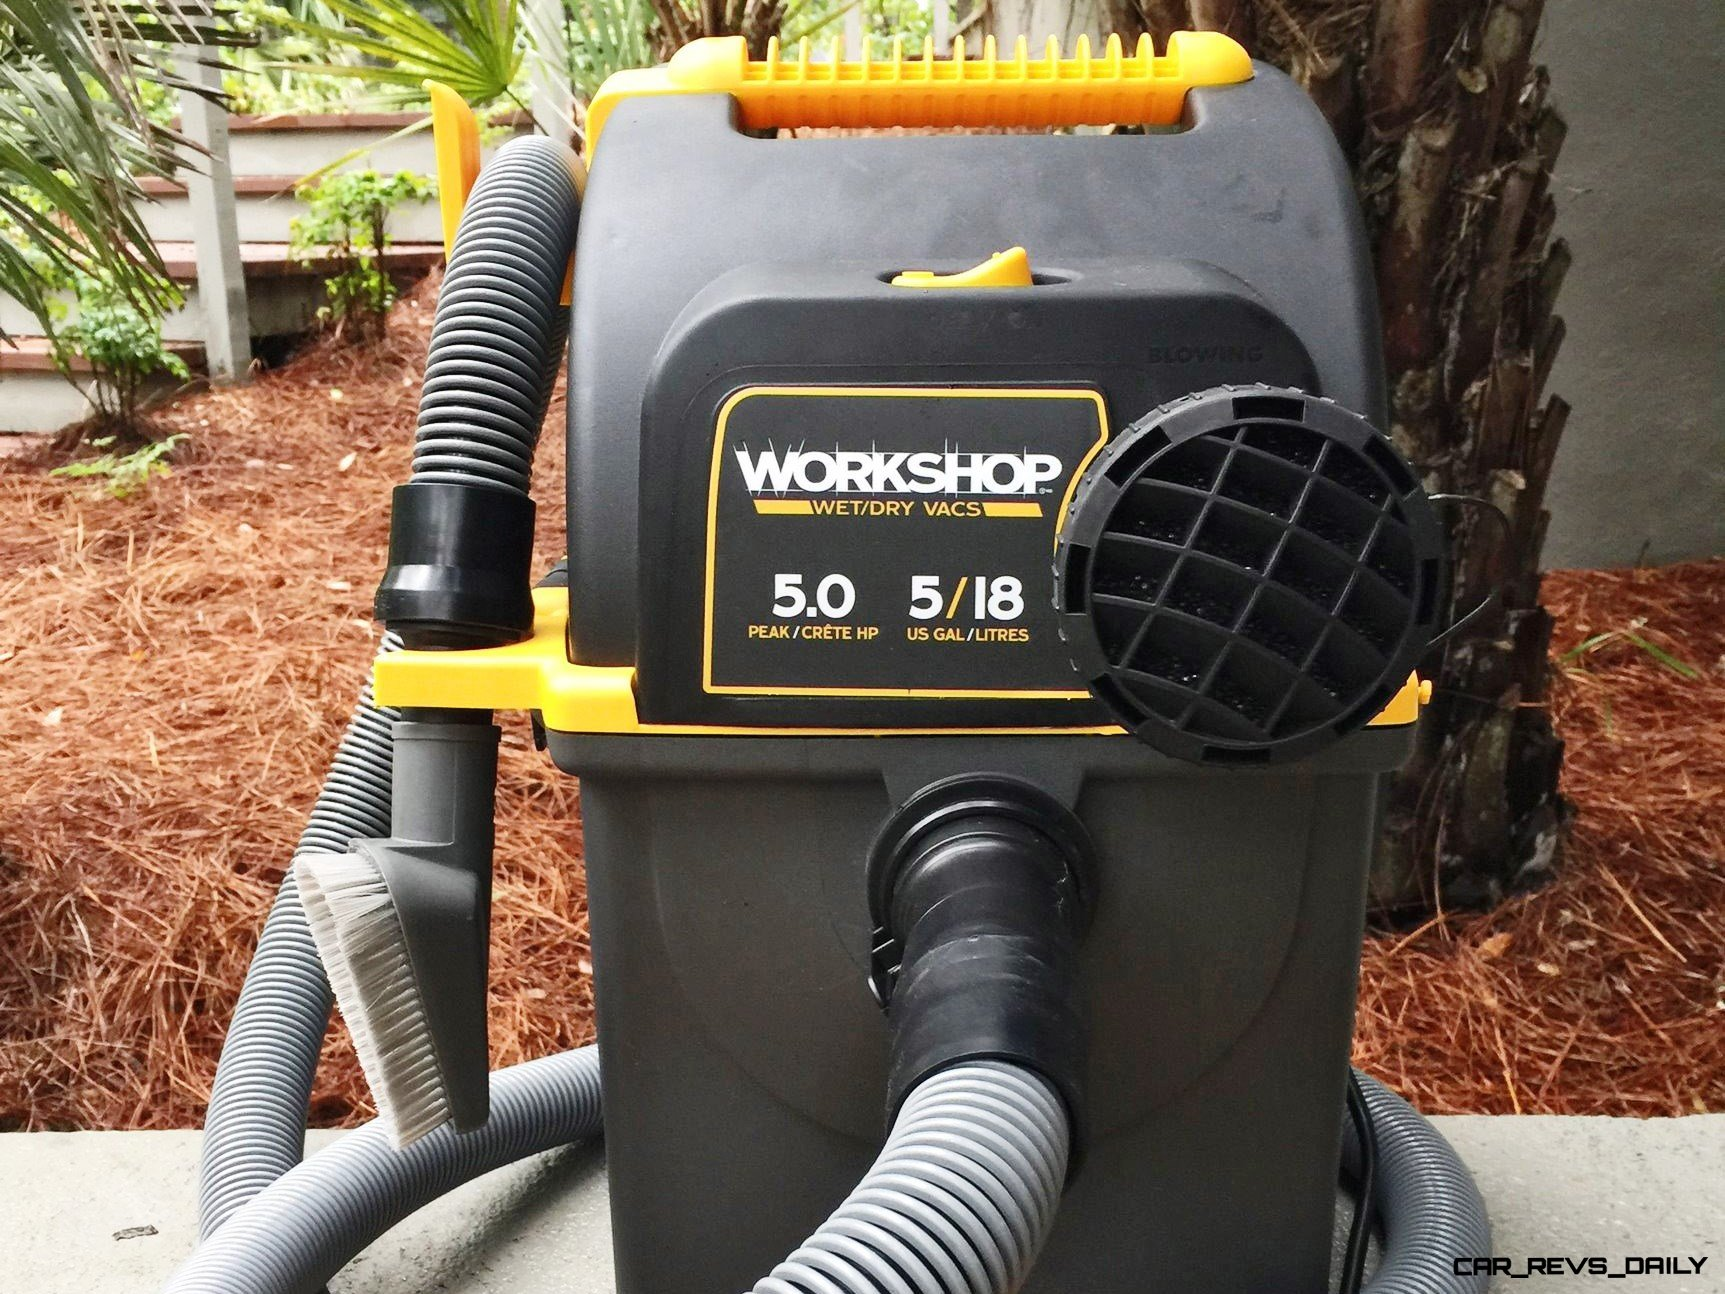 Hands-On Review - 2015 WORKSHOP Wet/Dry Vac - 5HP, 5-Gal Portable Wallmount